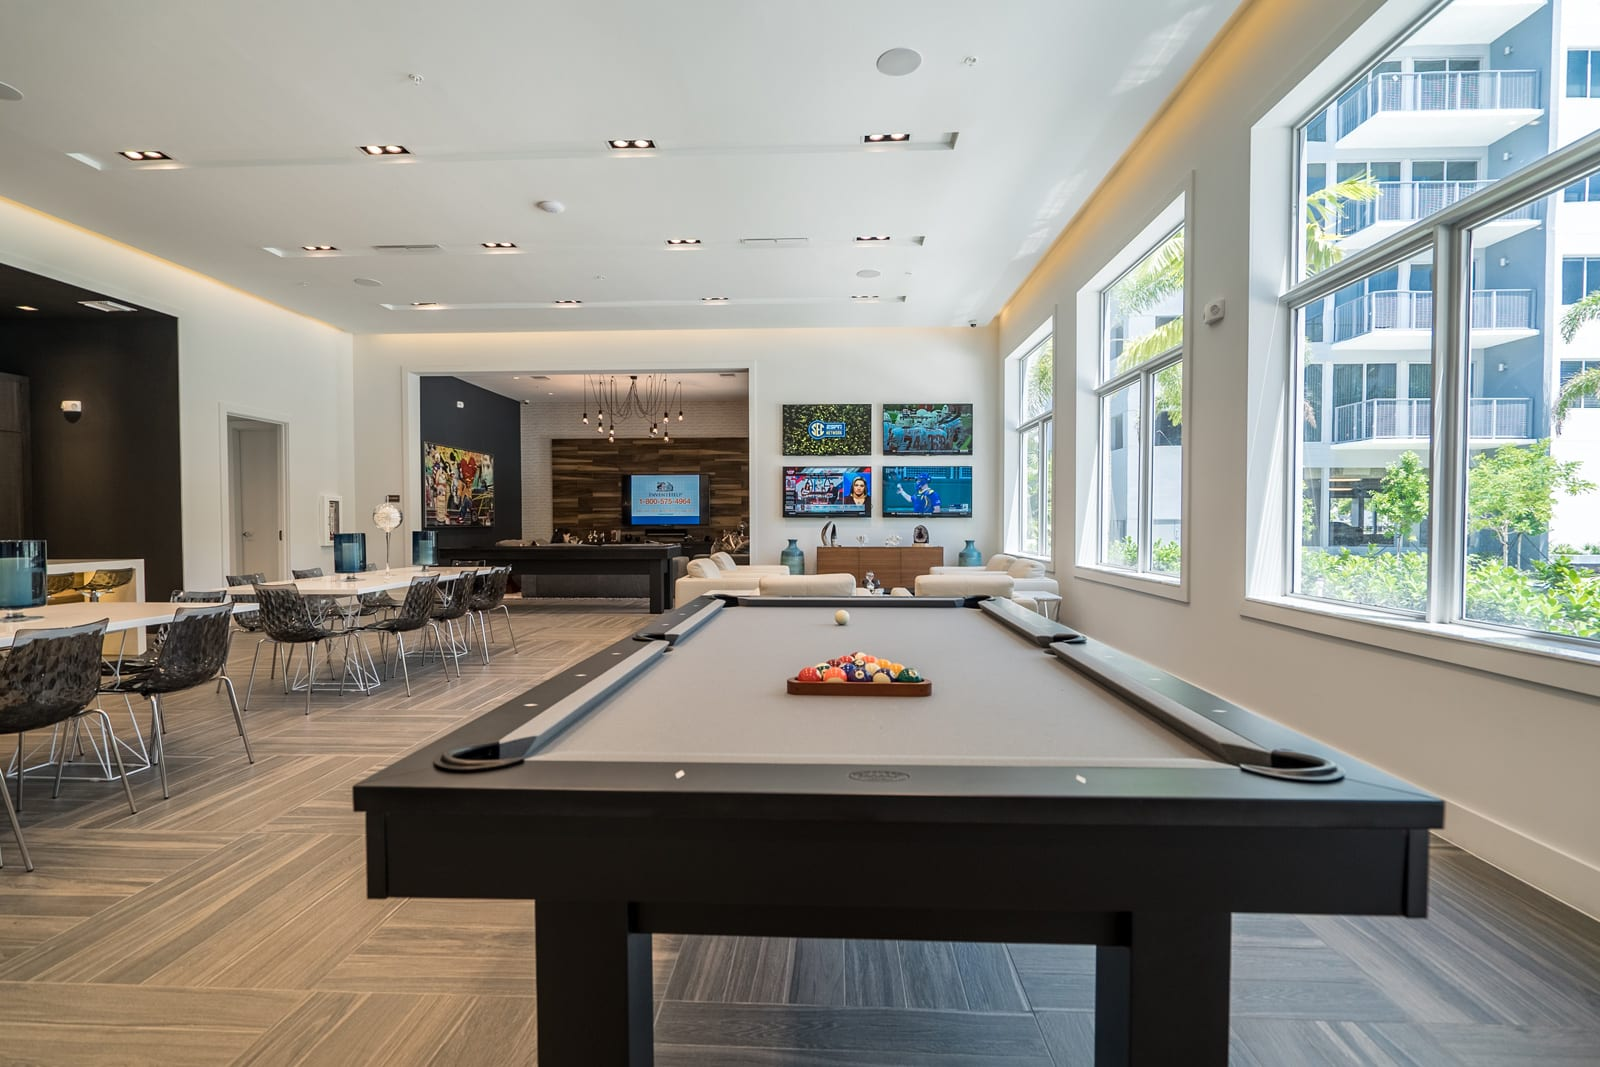 Recreation Room with Billiards Table at Allure by Windsor, 6750 Congress Avenue, Boca Raton